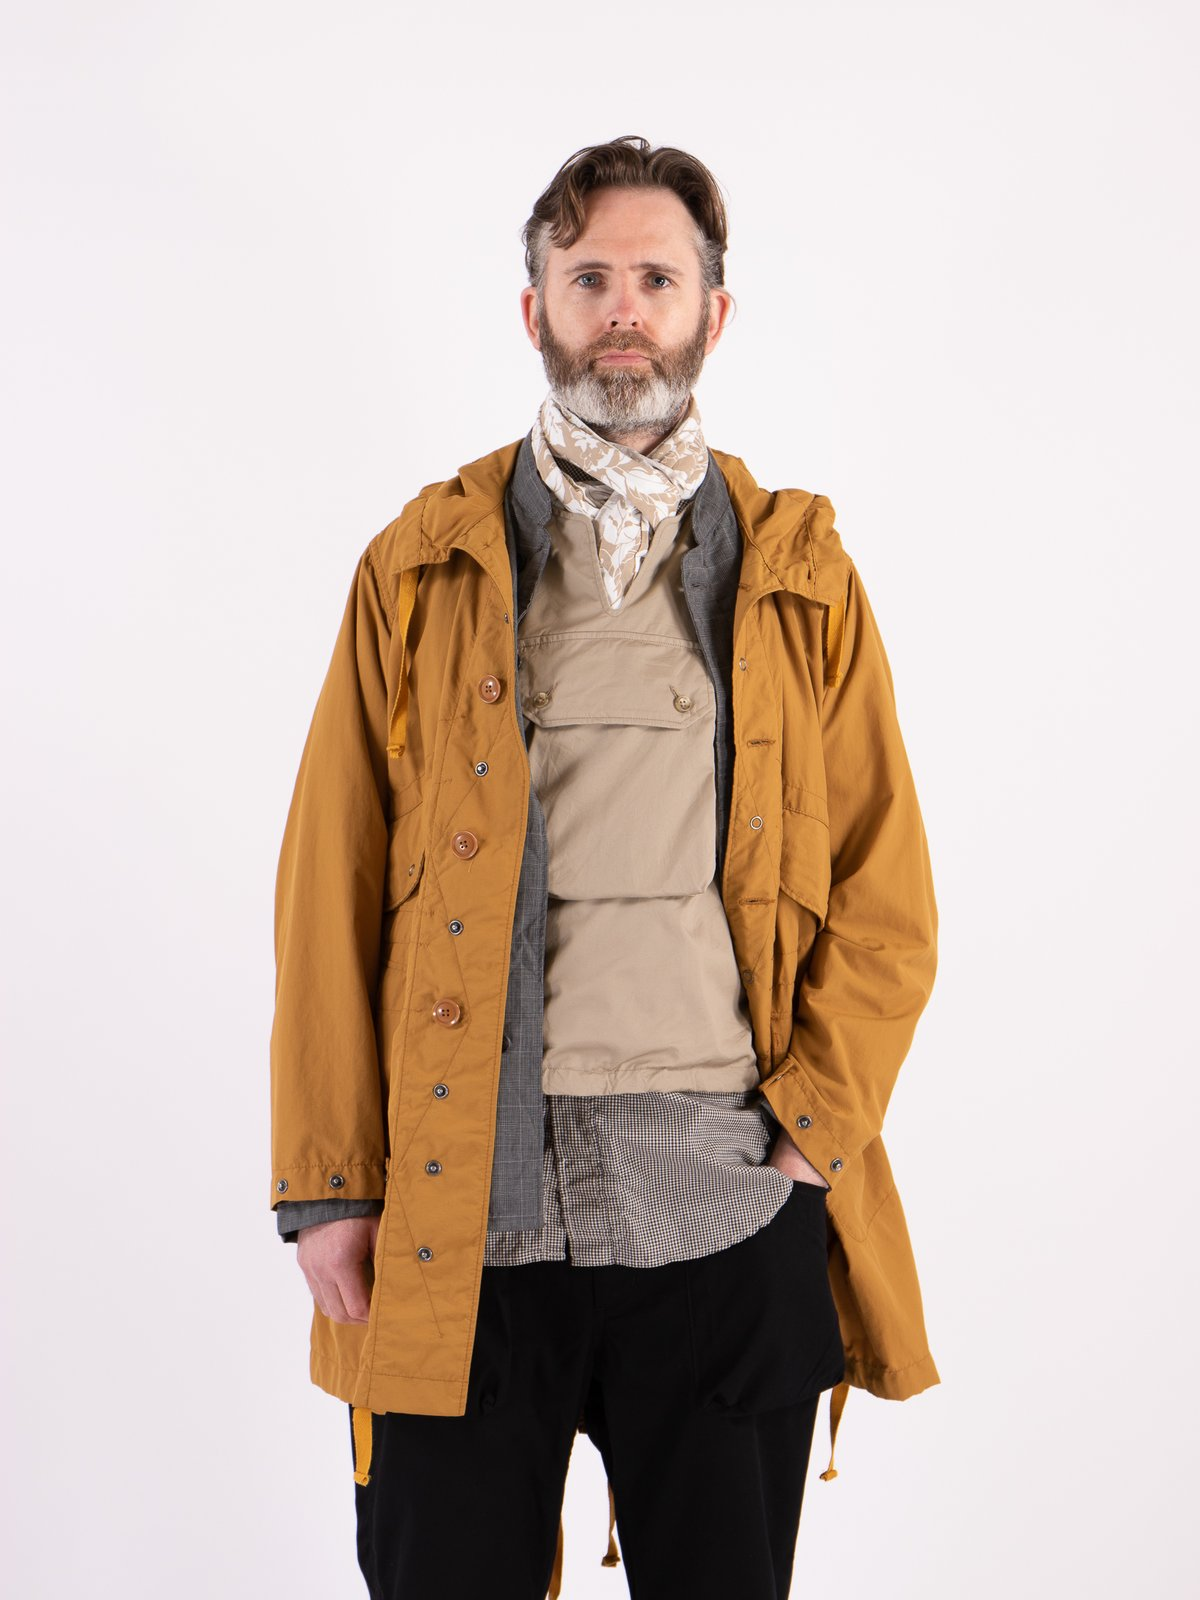 Khaki High Count Twill Cover Vest - Image 2